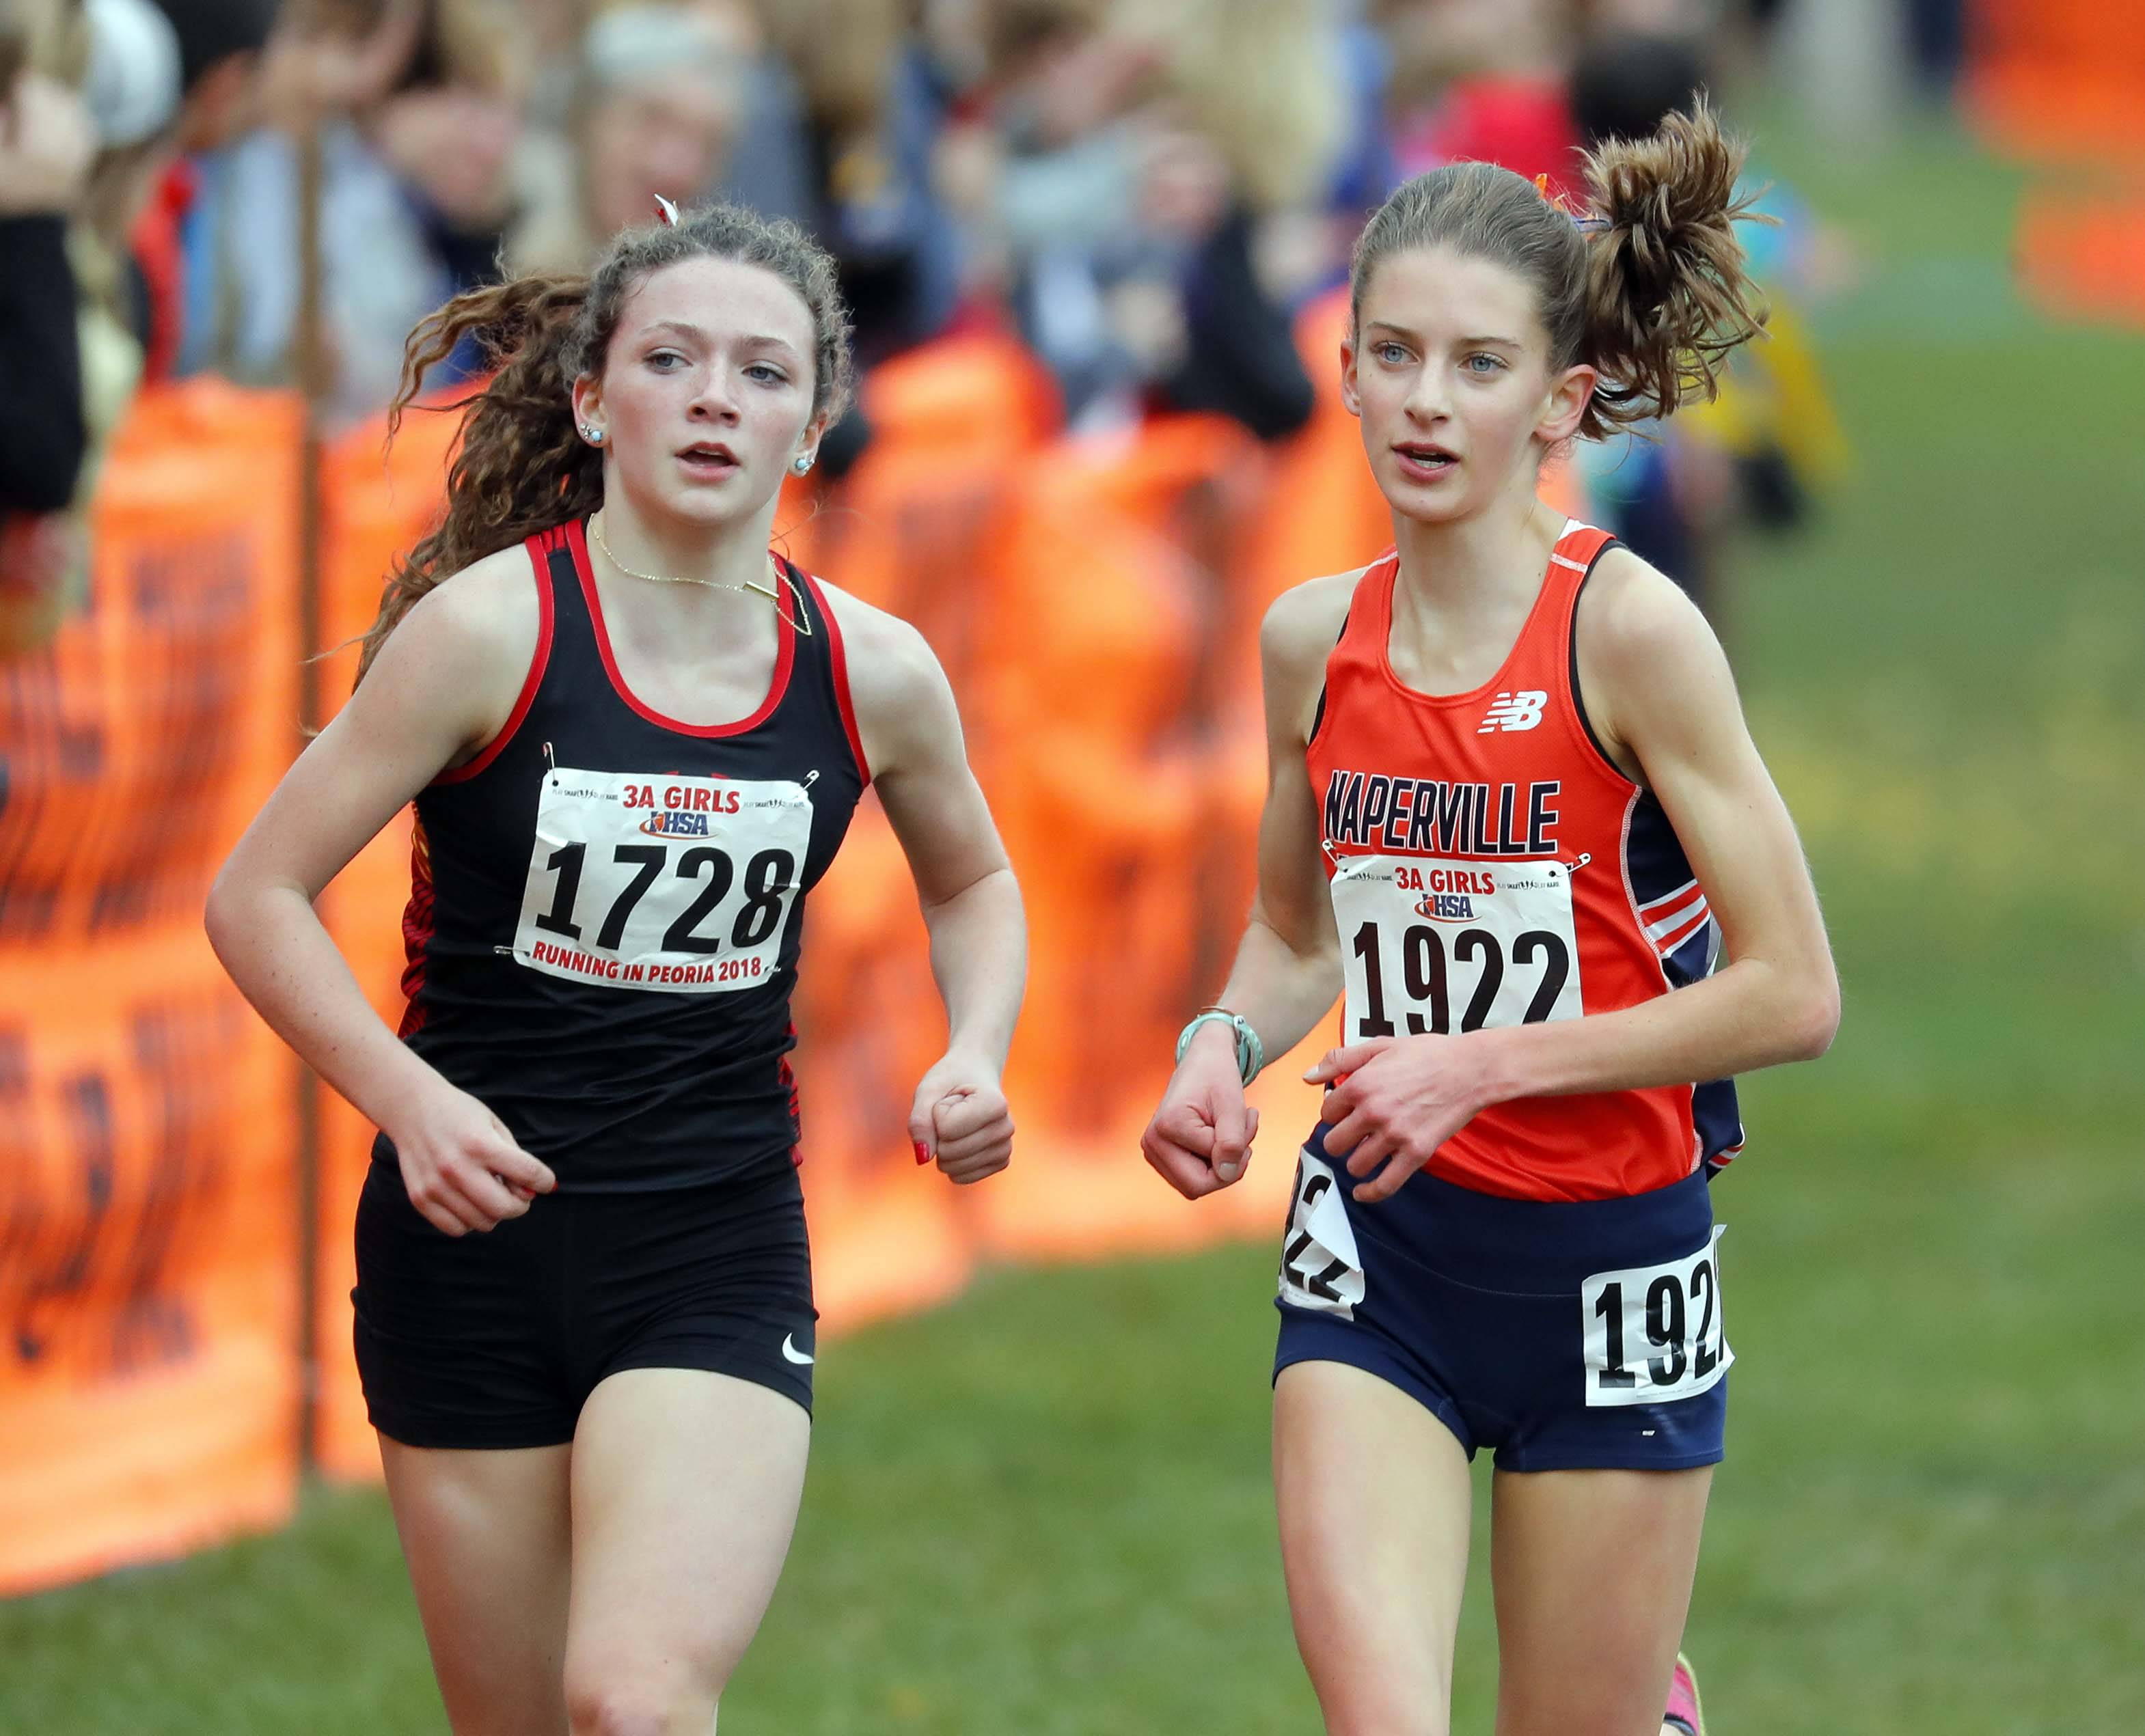 Batavia's Katrina Schlenker, left, and Naperville North's Alex Morris race to the finish at the Class 3A state meet.